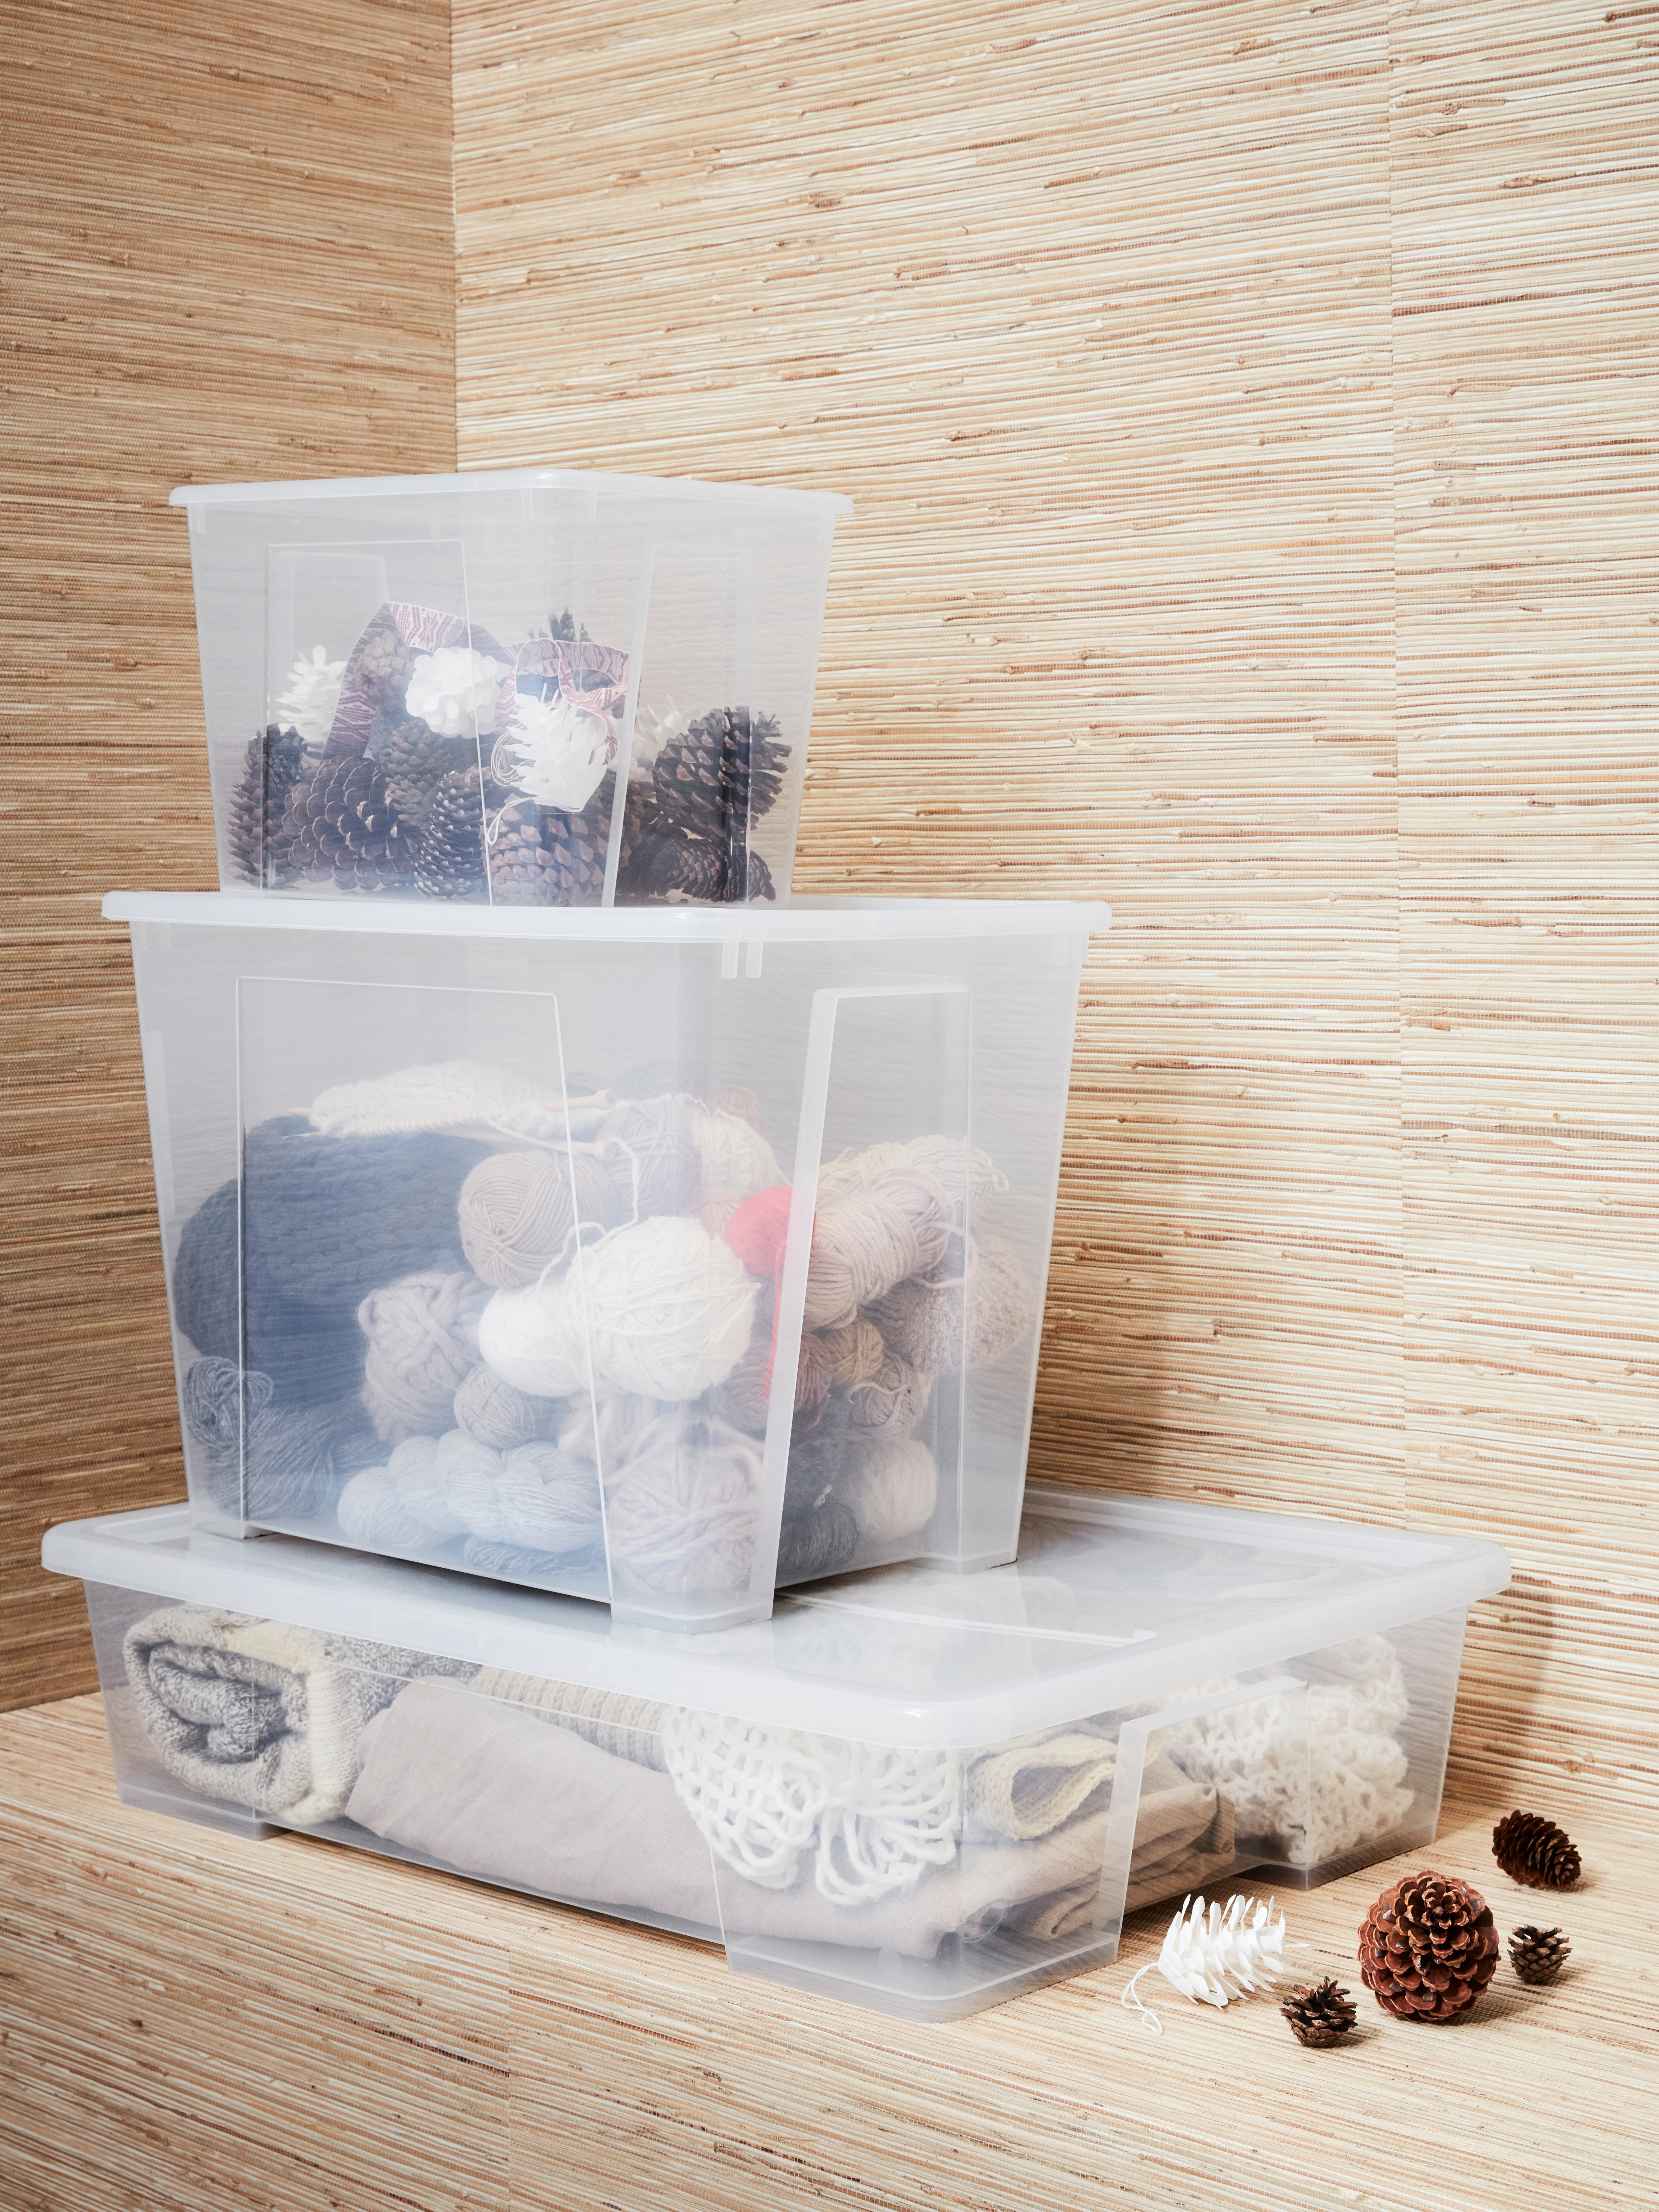 Close-up view of storage cabinet, with three transparent plastic boxes with lids, cones, knitting utensils and knitwear.